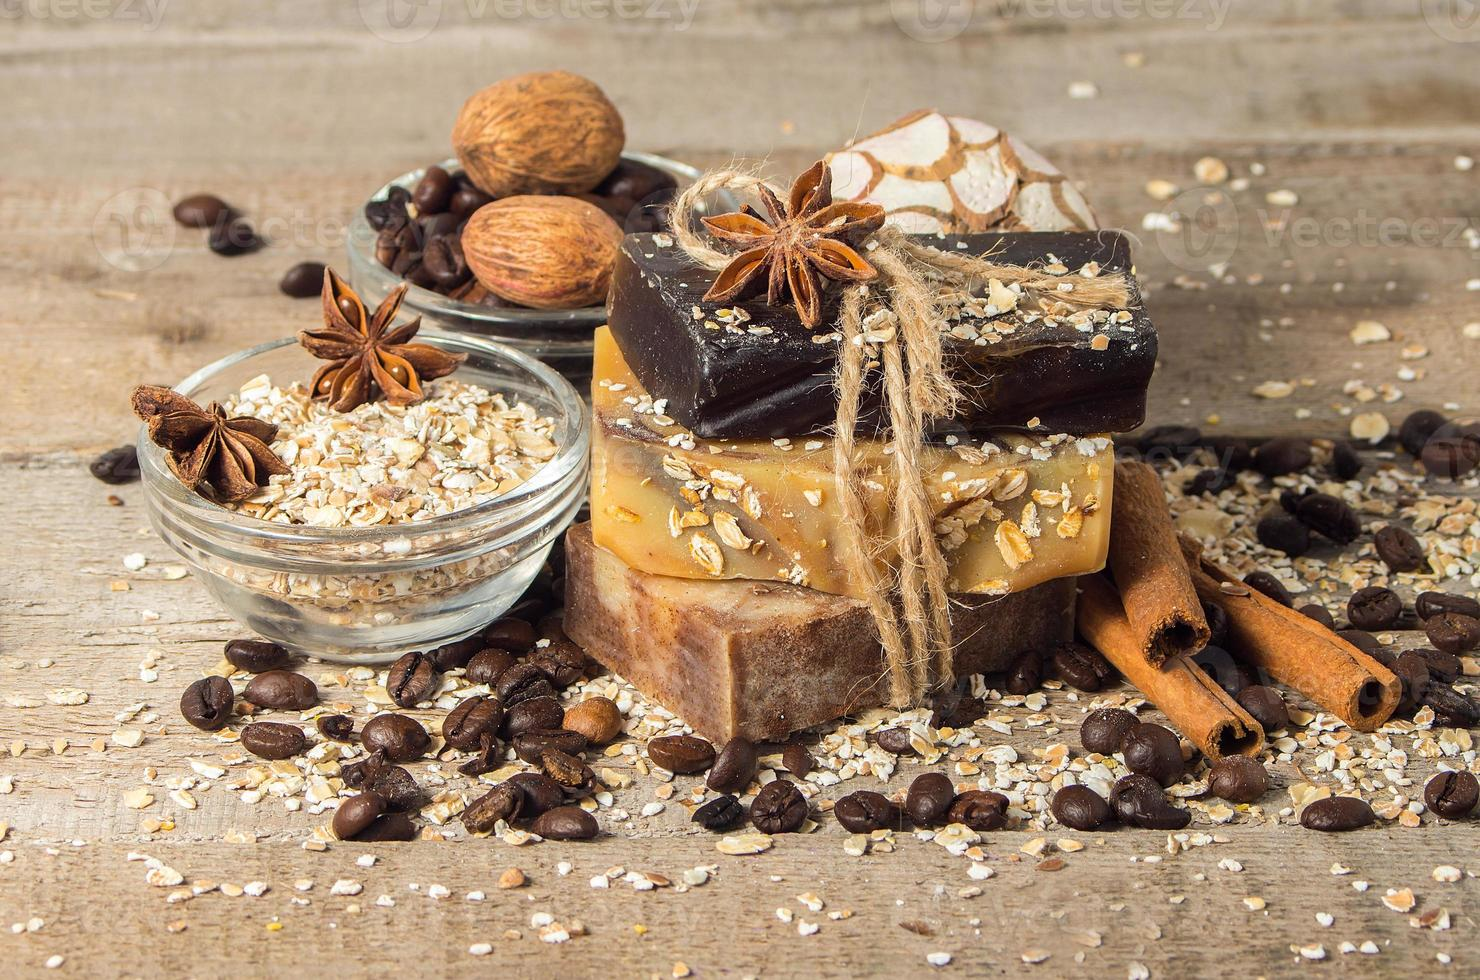 Handmade soap with coffee beans and spices photo